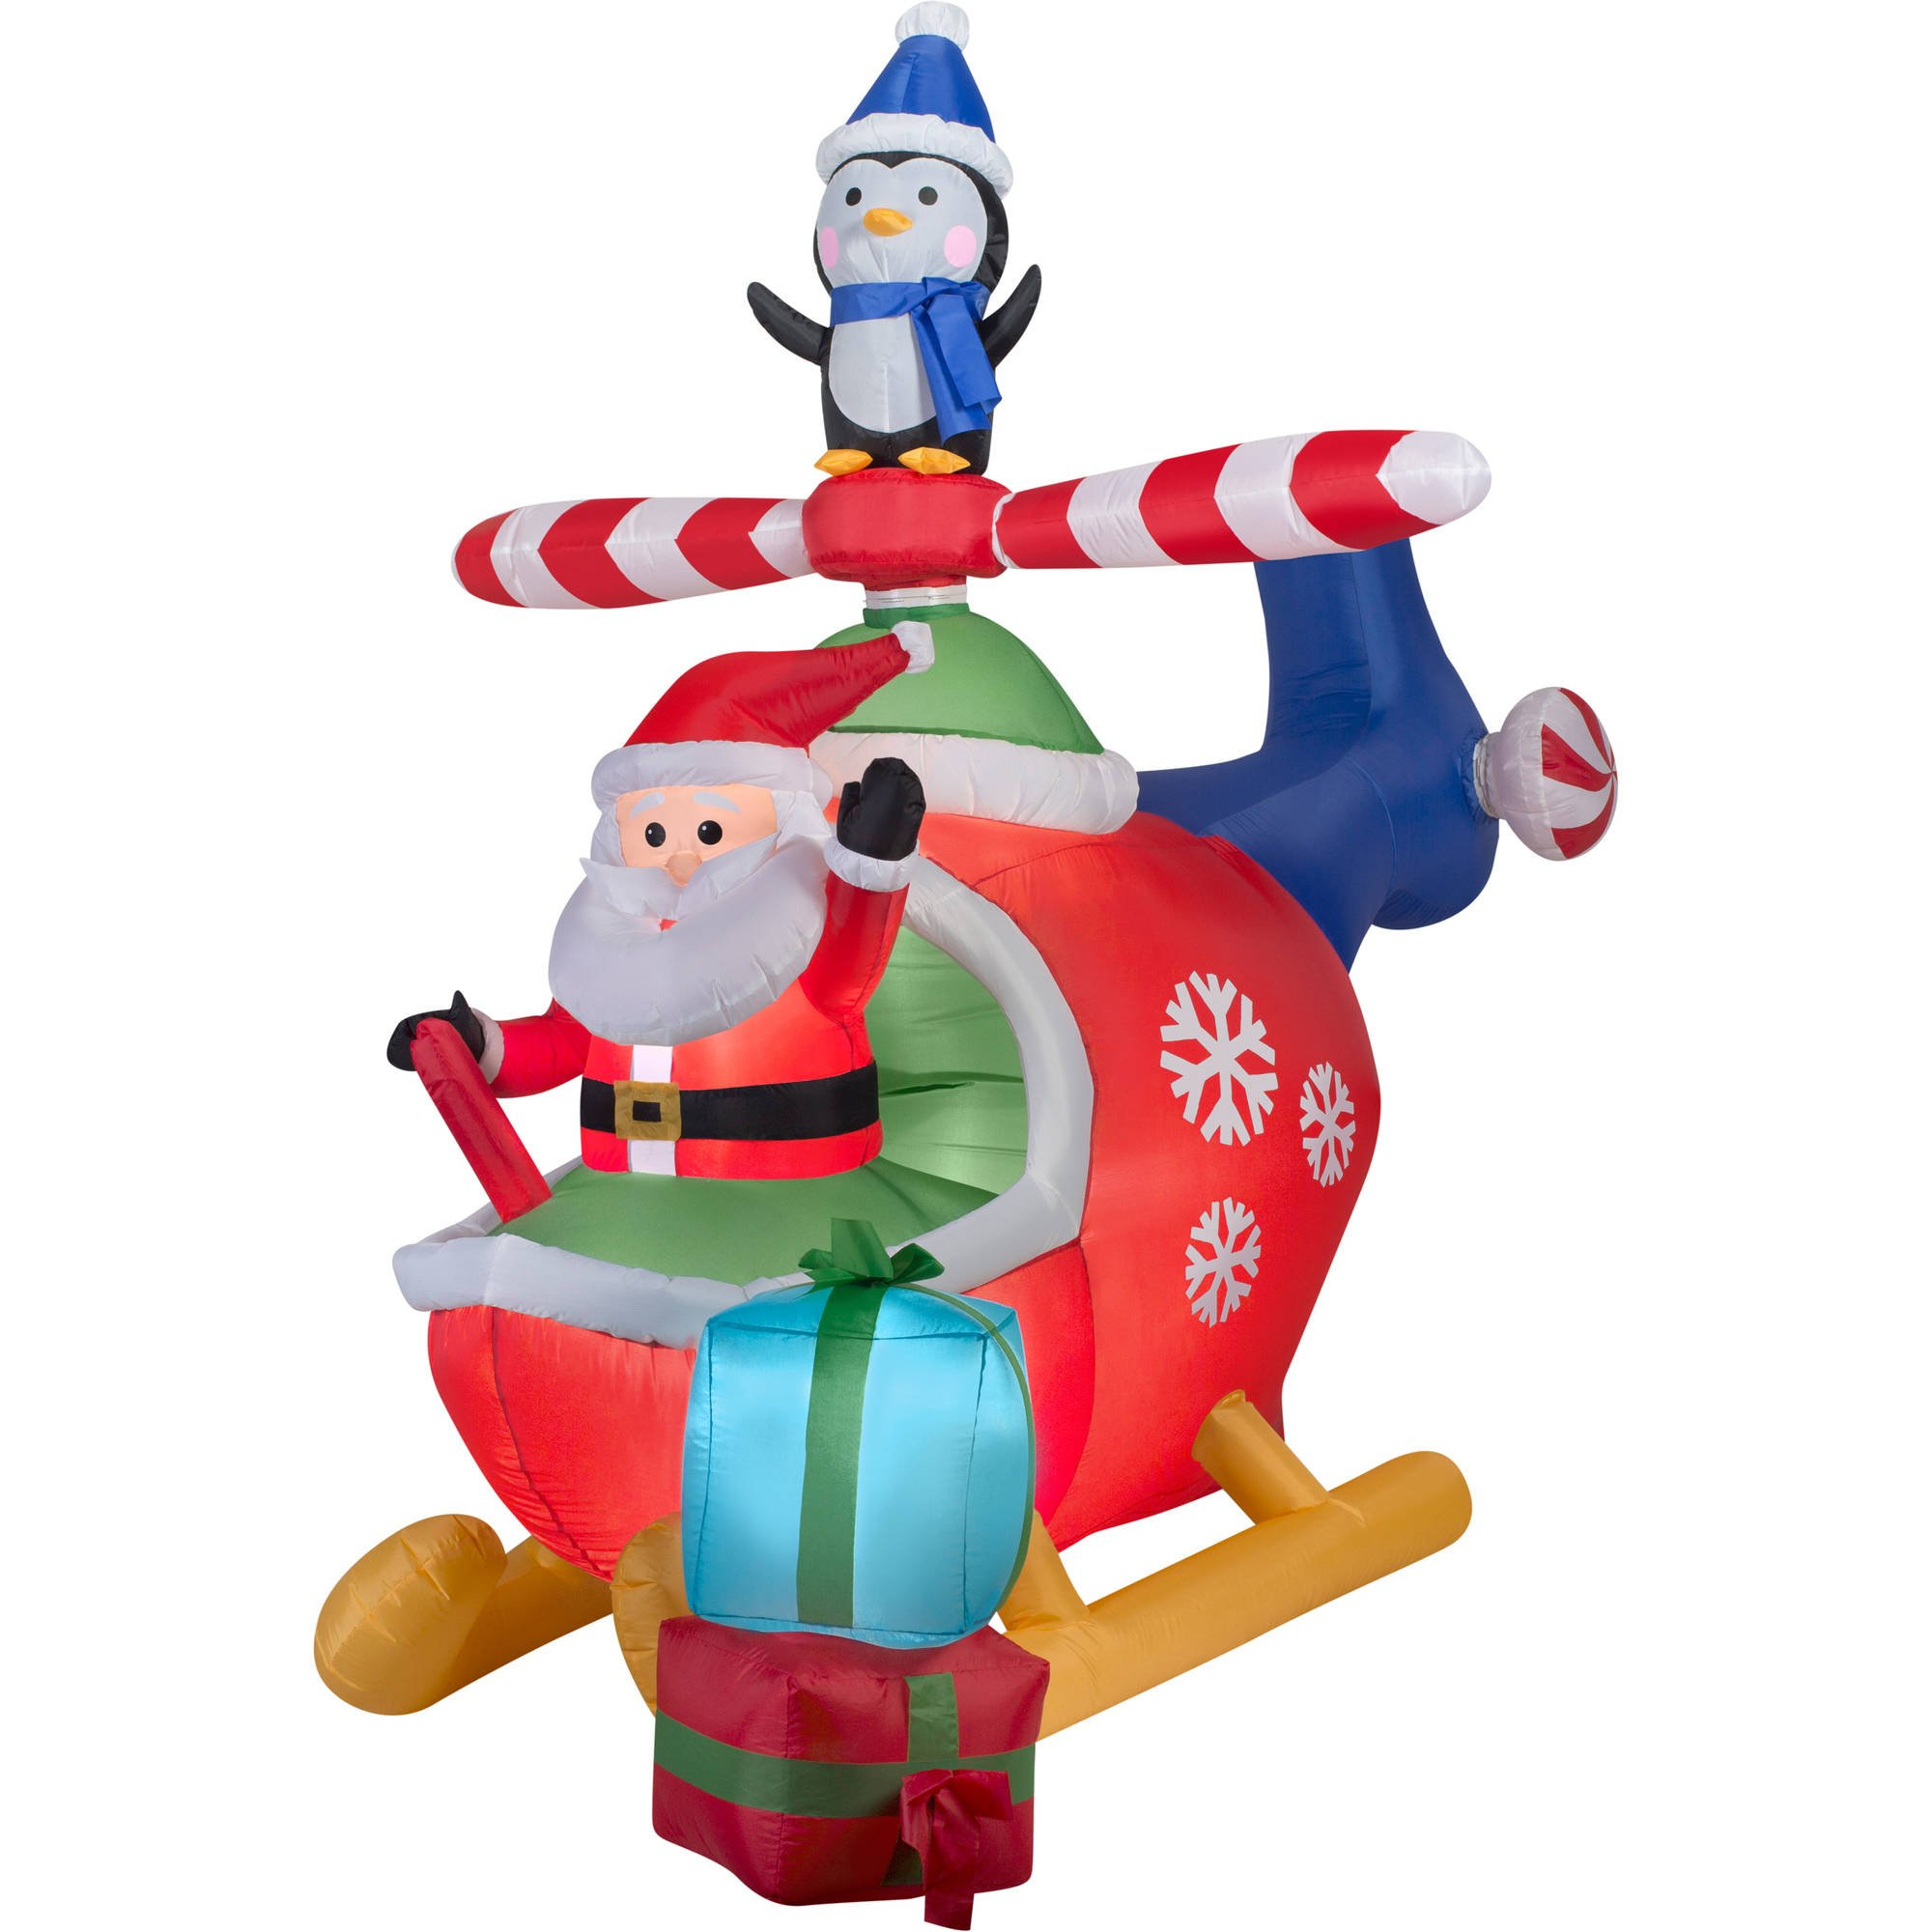 8 Ft Gemmy Airblown Inflatable Santa and Penguin in Helicopter Scene Holiday Christmas Decor by Gemmy Airblown